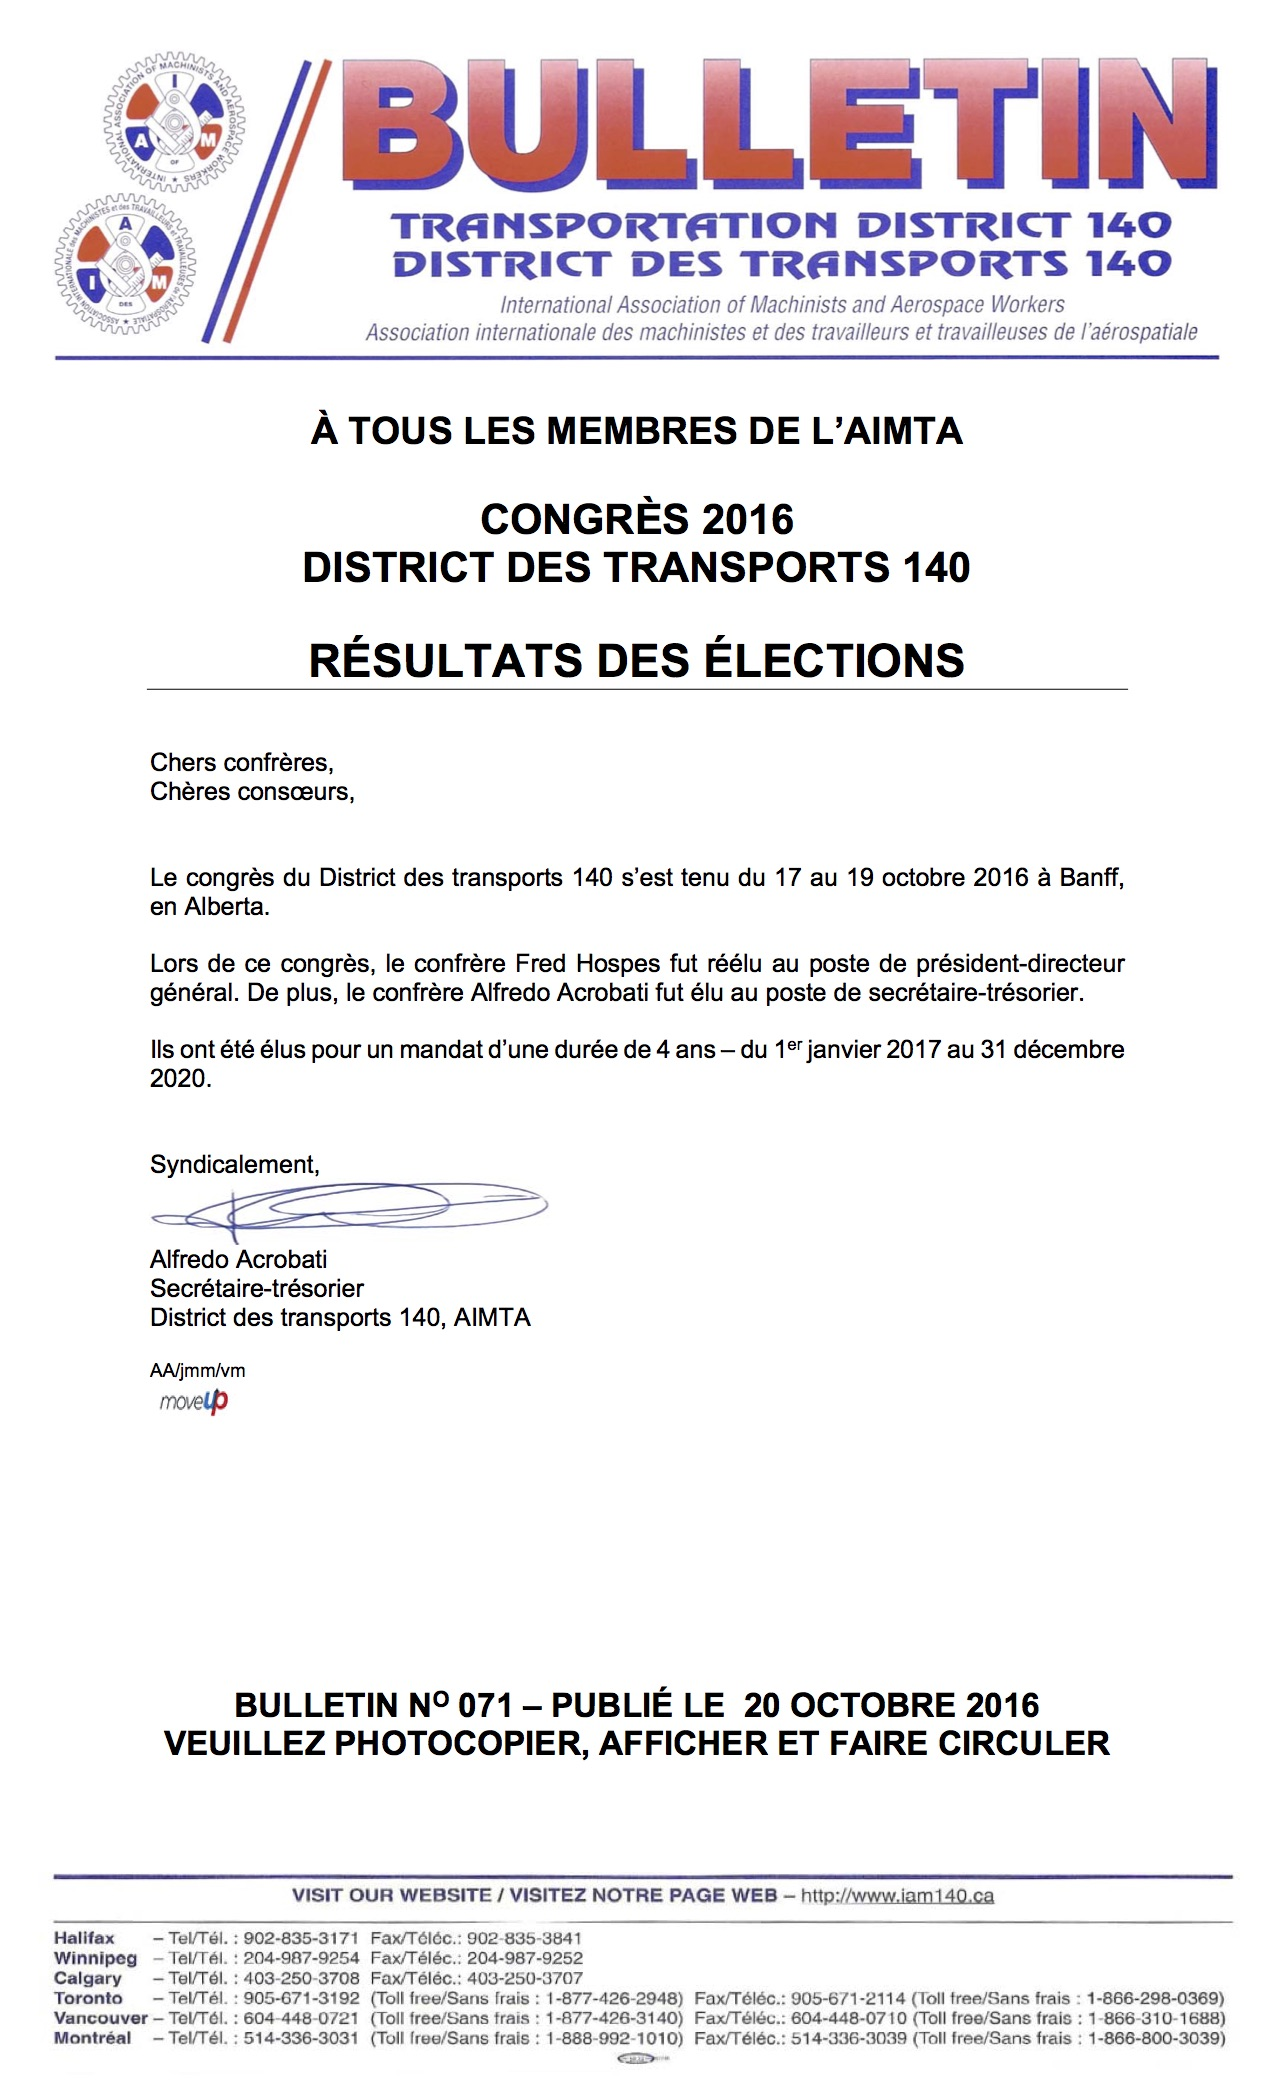 bulletin-071-district-lodge-convention-election-results-october-20-2016-franc%cc%a7ais